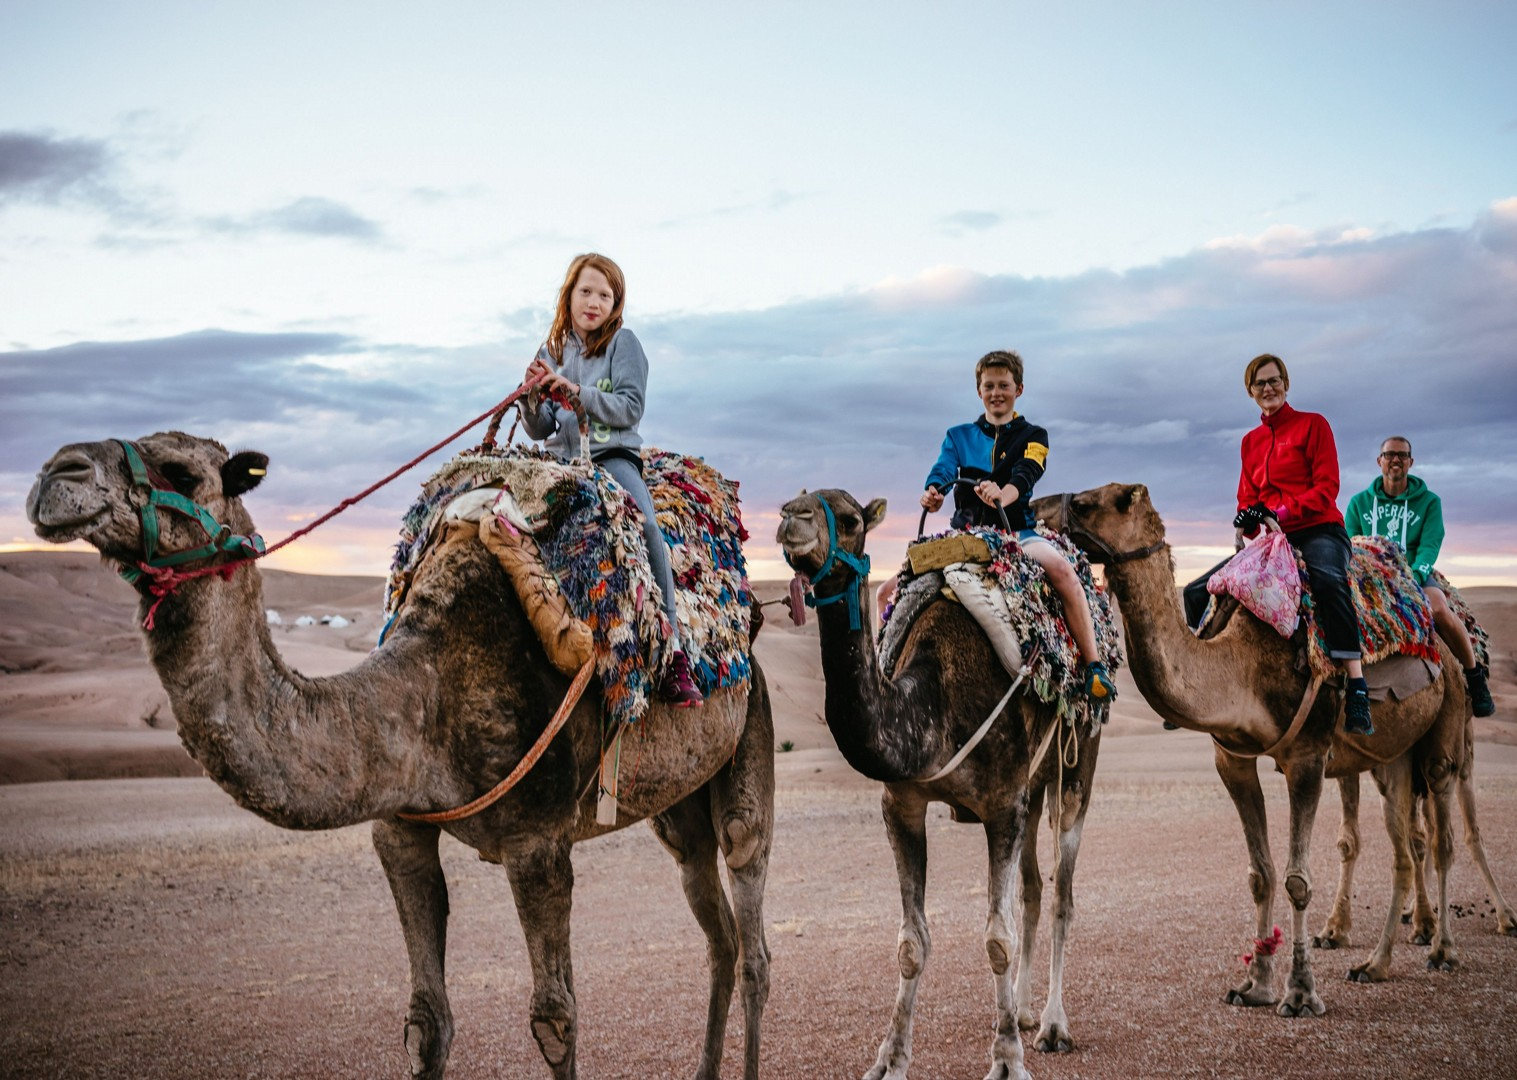 Family-Cycling-Holiday-Morocco-Desert-Mountains-Coast-Camels-ride-a-camel - Morocco - Desert, Mountains and Coast - Guided Family Cycling Holiday - Family Cycling